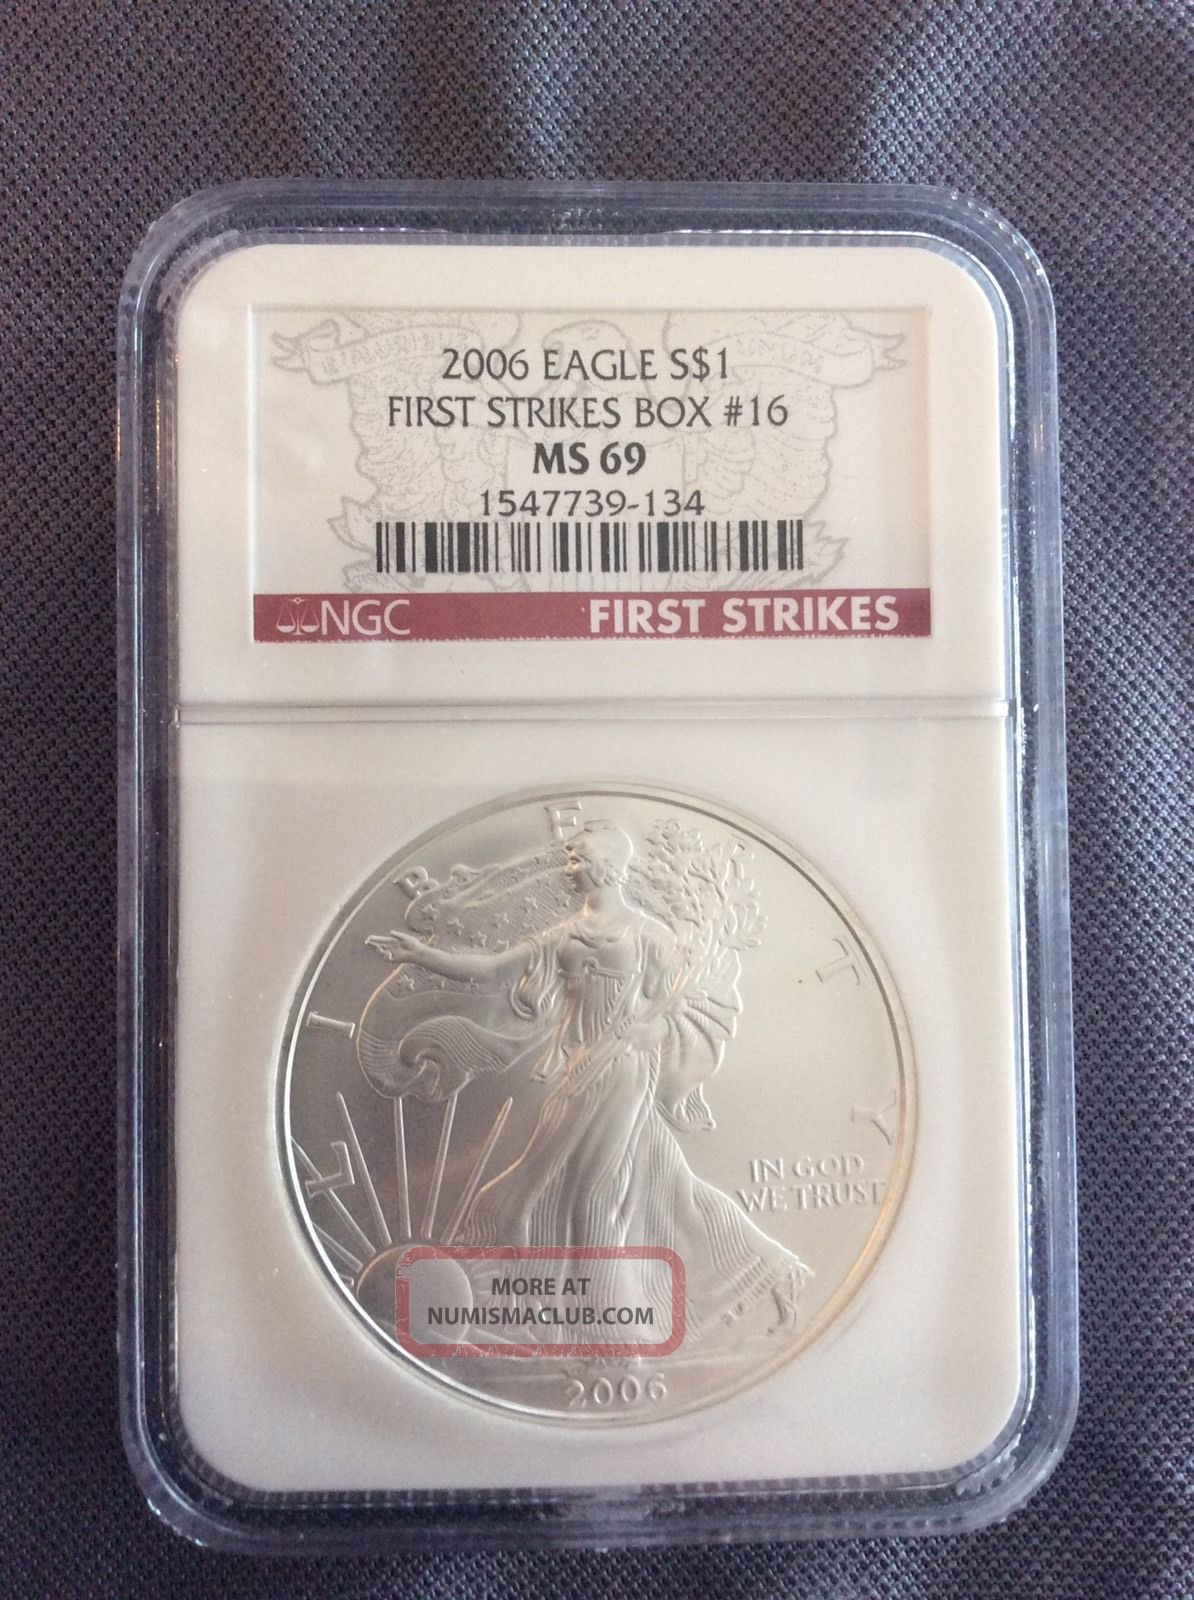 2006 Silver Eagle First Strikes Box 16 Ngc Ms69 Silver photo